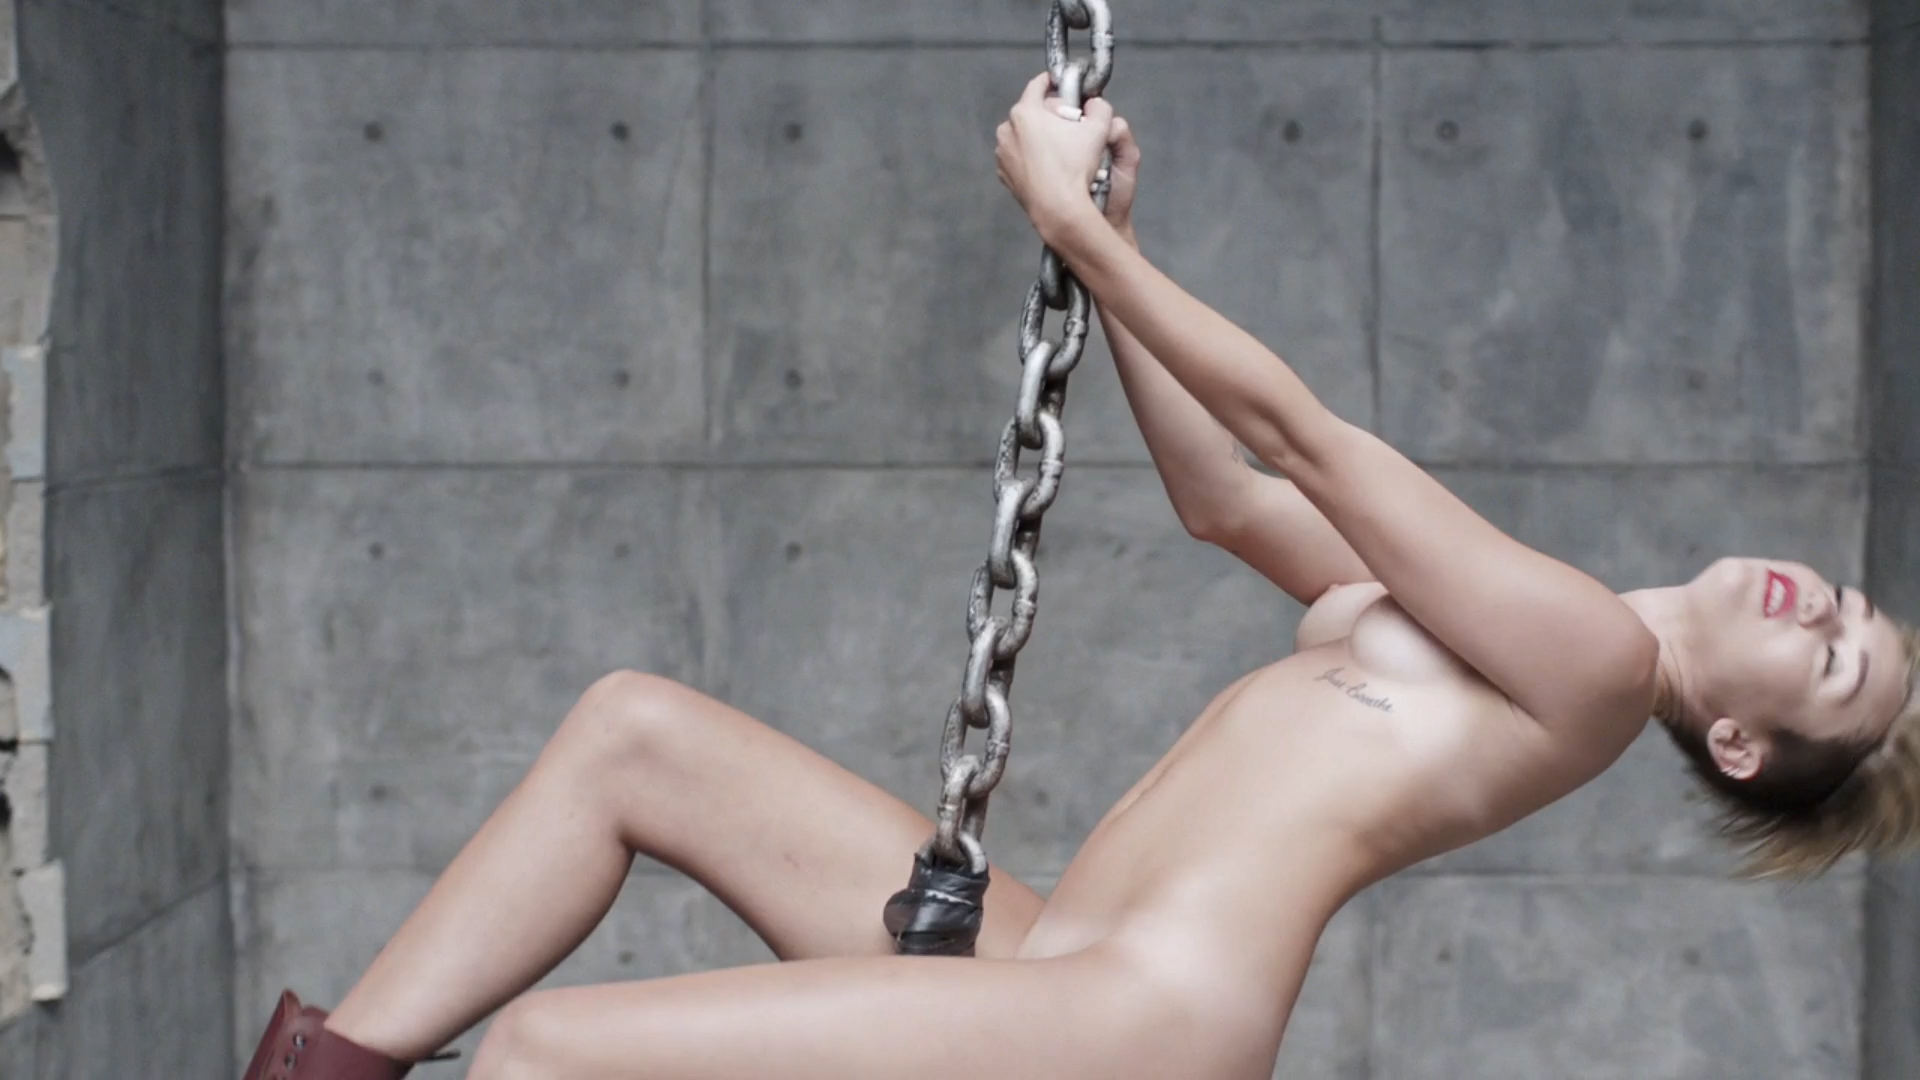 Miley cyrus hd nude-4452